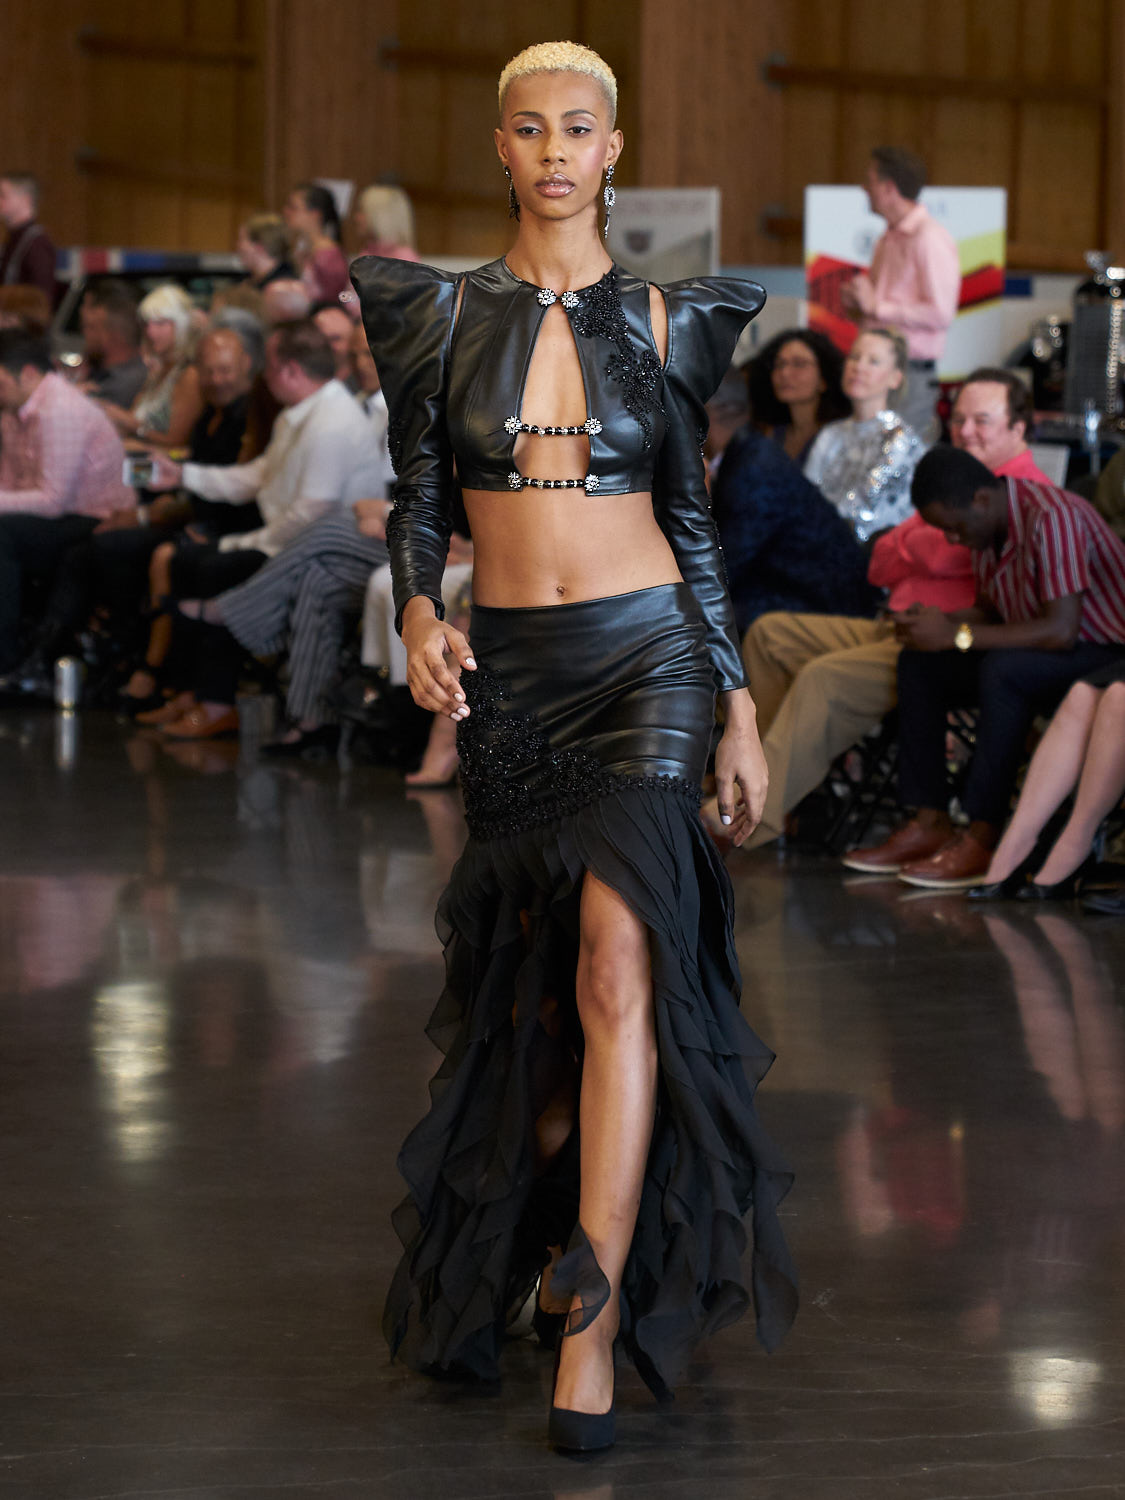 AMVISUALS-Couture-Cars-Fashion-Show-LeMay-Museum-Tacoma-Fashion-14.jpg